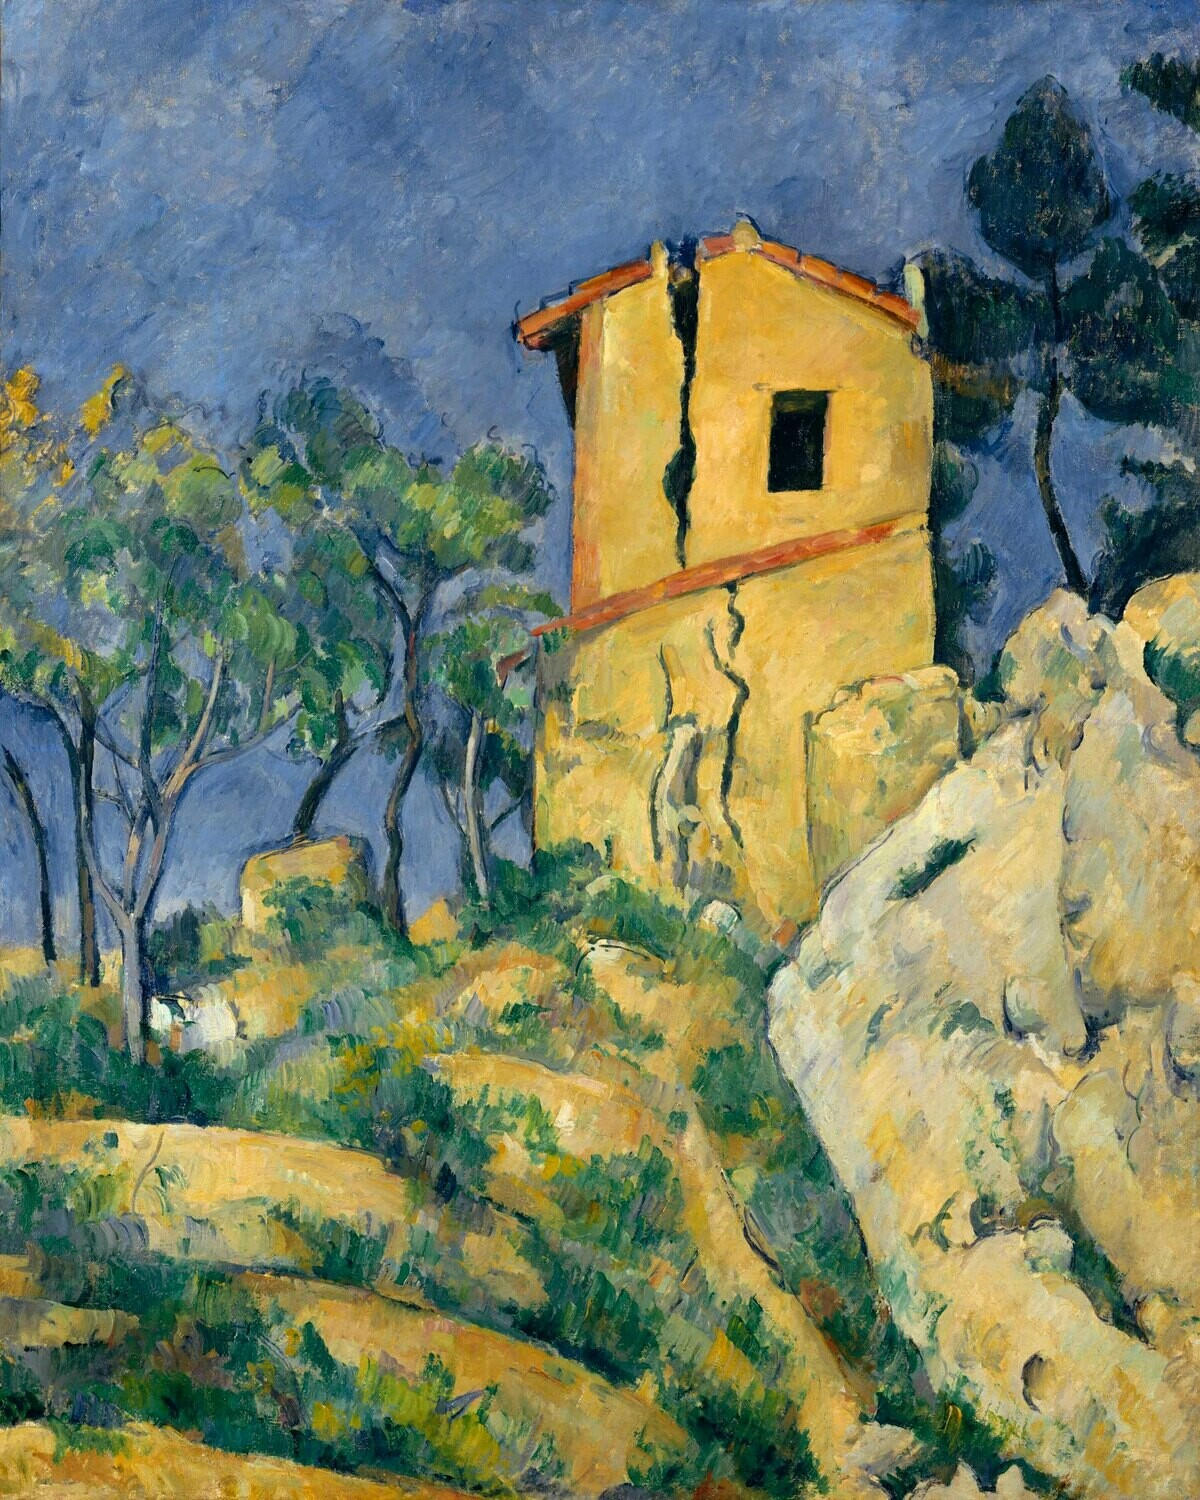 Paul Cézanne | The House with the Cracked Walls